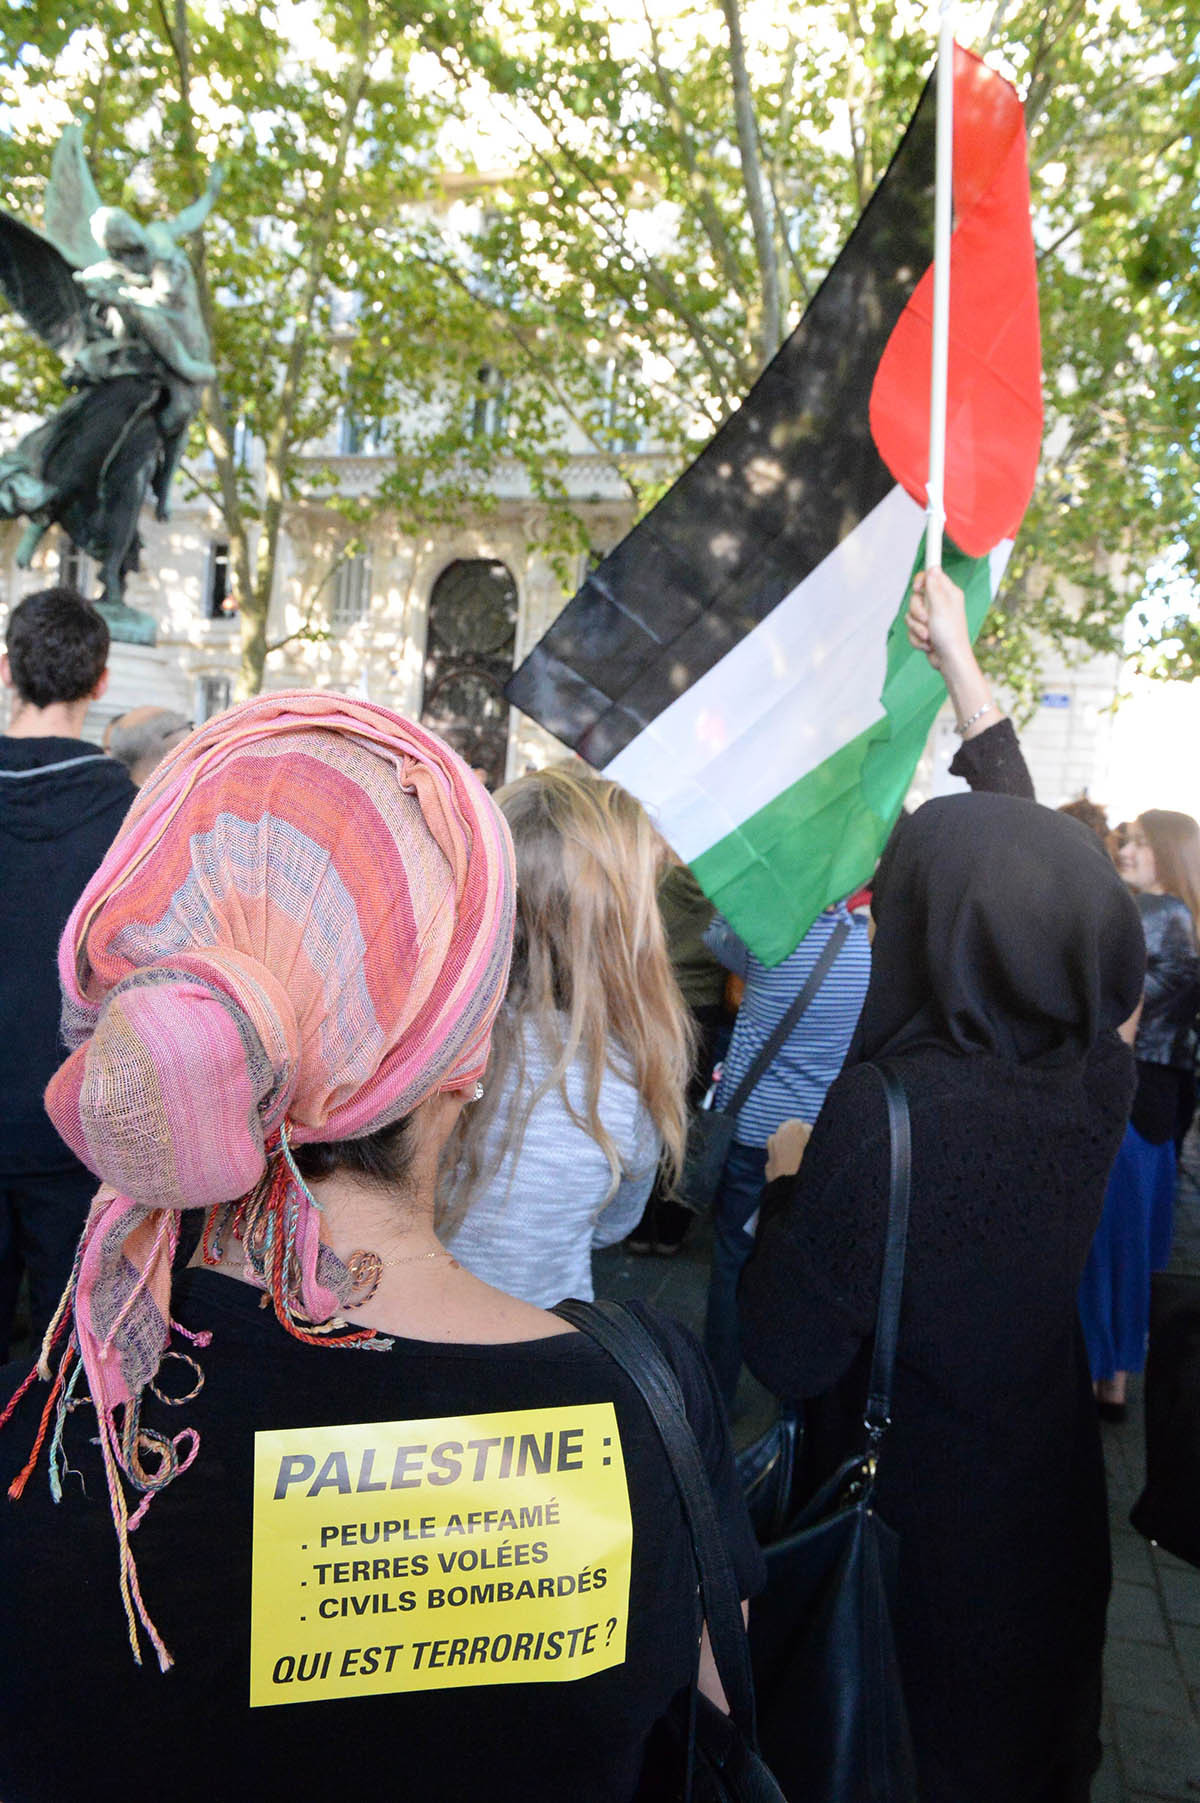 Almost 300 people congregate on July 10, 2014 in Bordeaux to denounce the Israeli military offensive inthe Gaza strip. — Photo by AFP